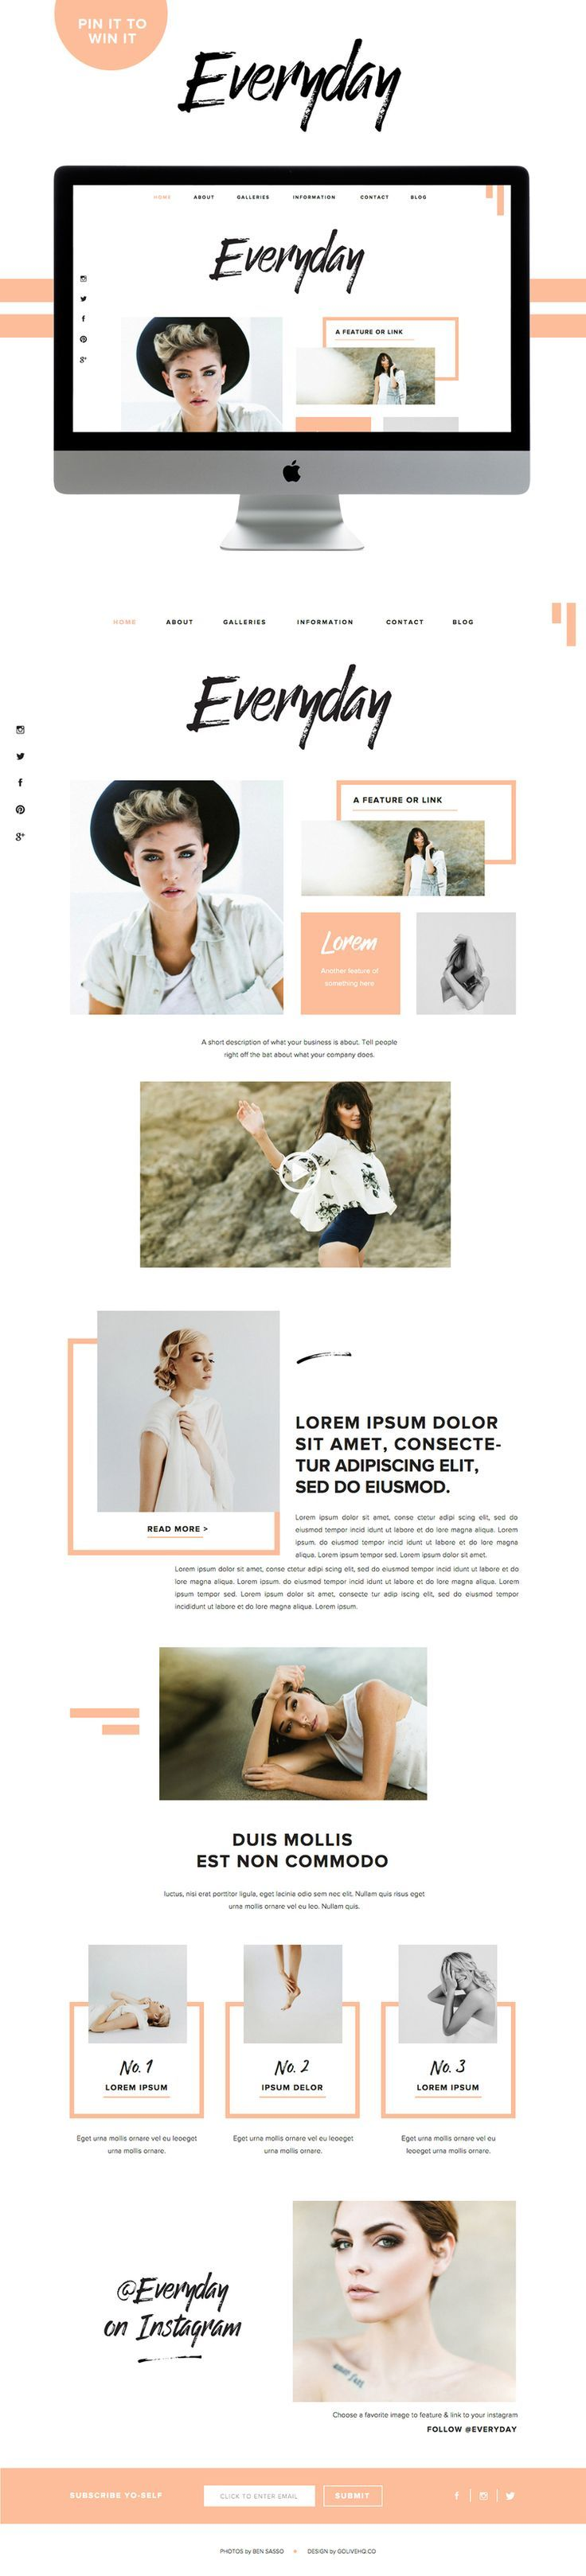 I love every last one of the their new Showit 5 designs! I can't believe I'm just now hearing about Showit. To win any of these designs would be a blessing. || modern website showit5 inspiration | BY http://GOLIVEHQ.CO